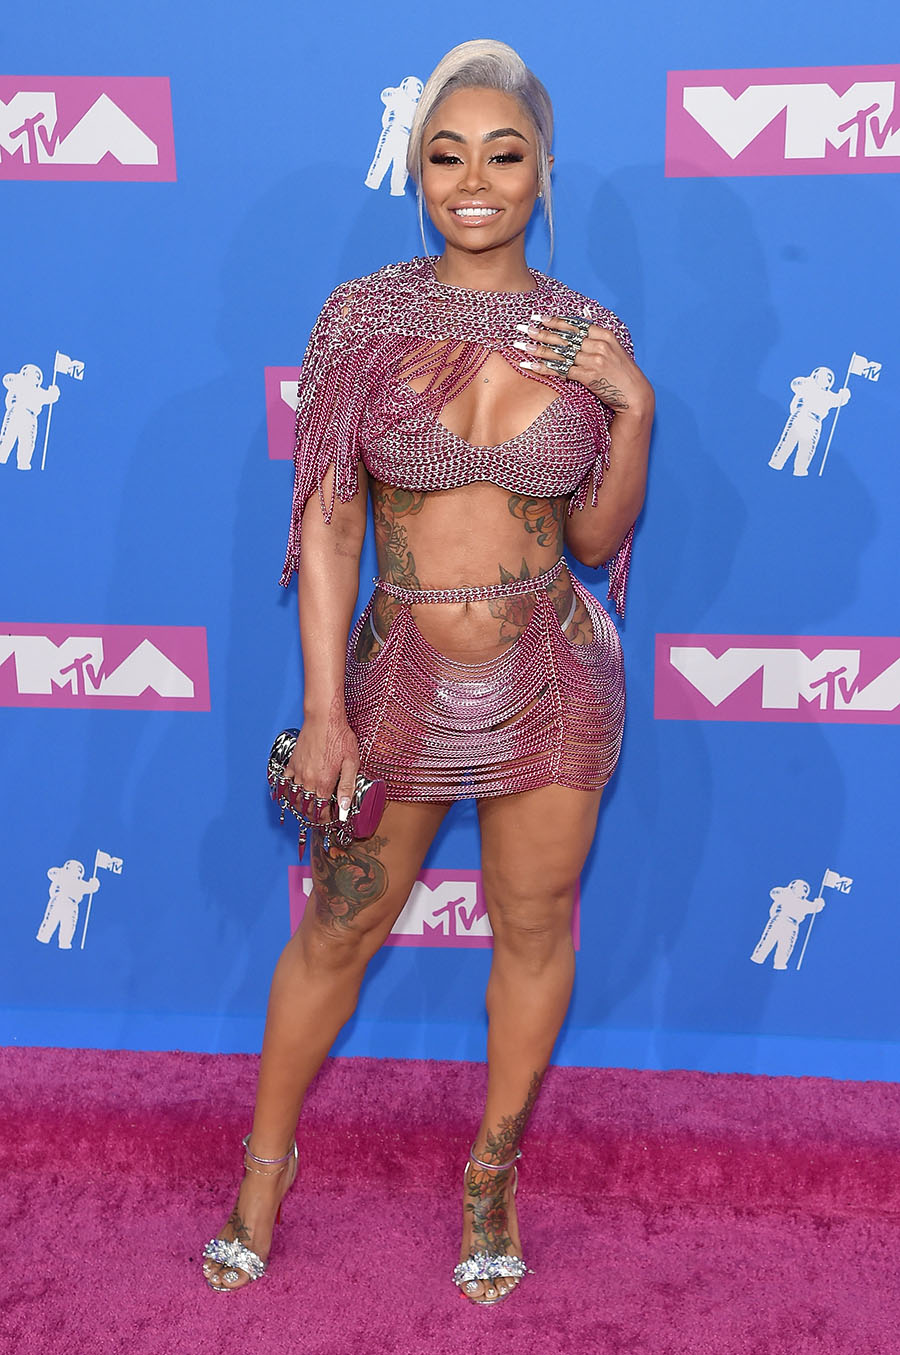 Blac Chyna Attends The 2018 Mtv Video Music Awards At